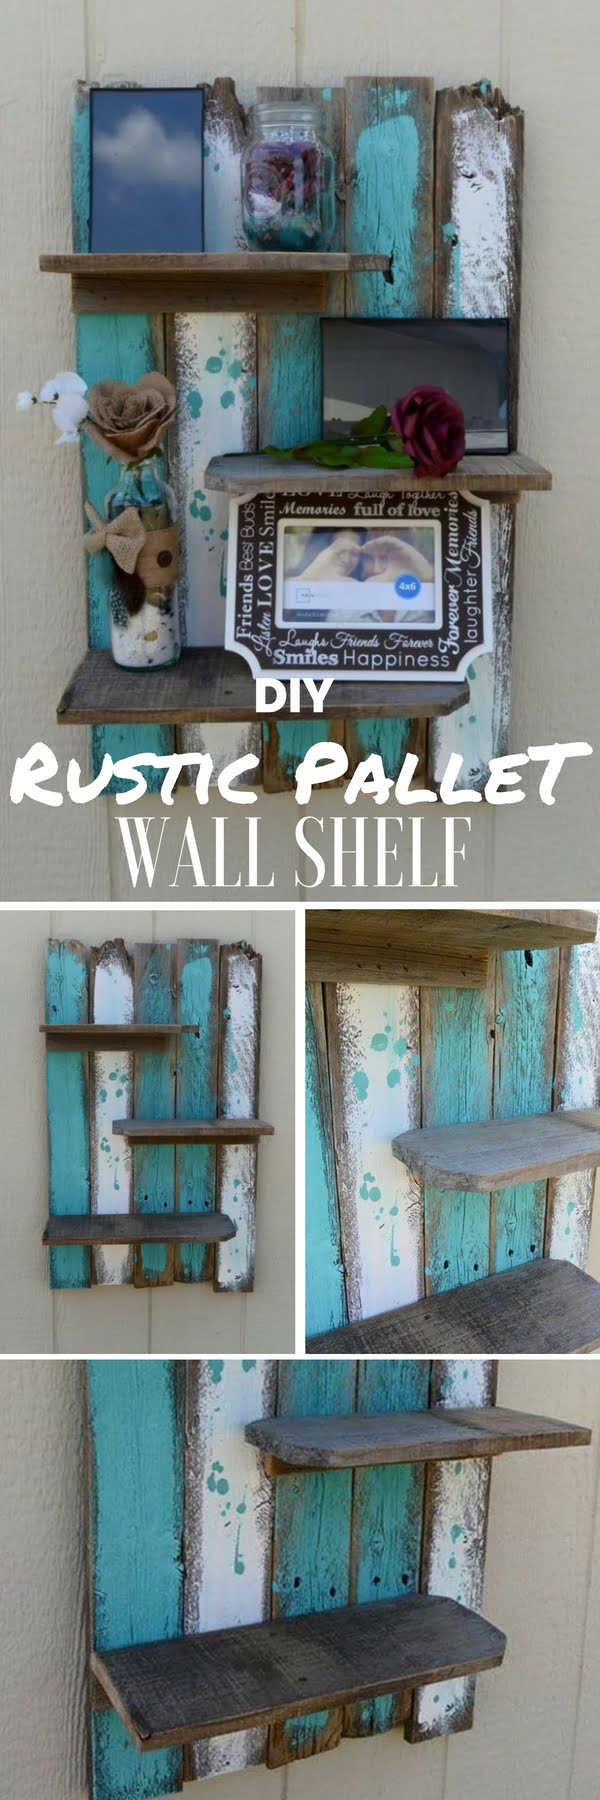 Check out the tutorial: #DIY Rustic Pallet Wall Shelf